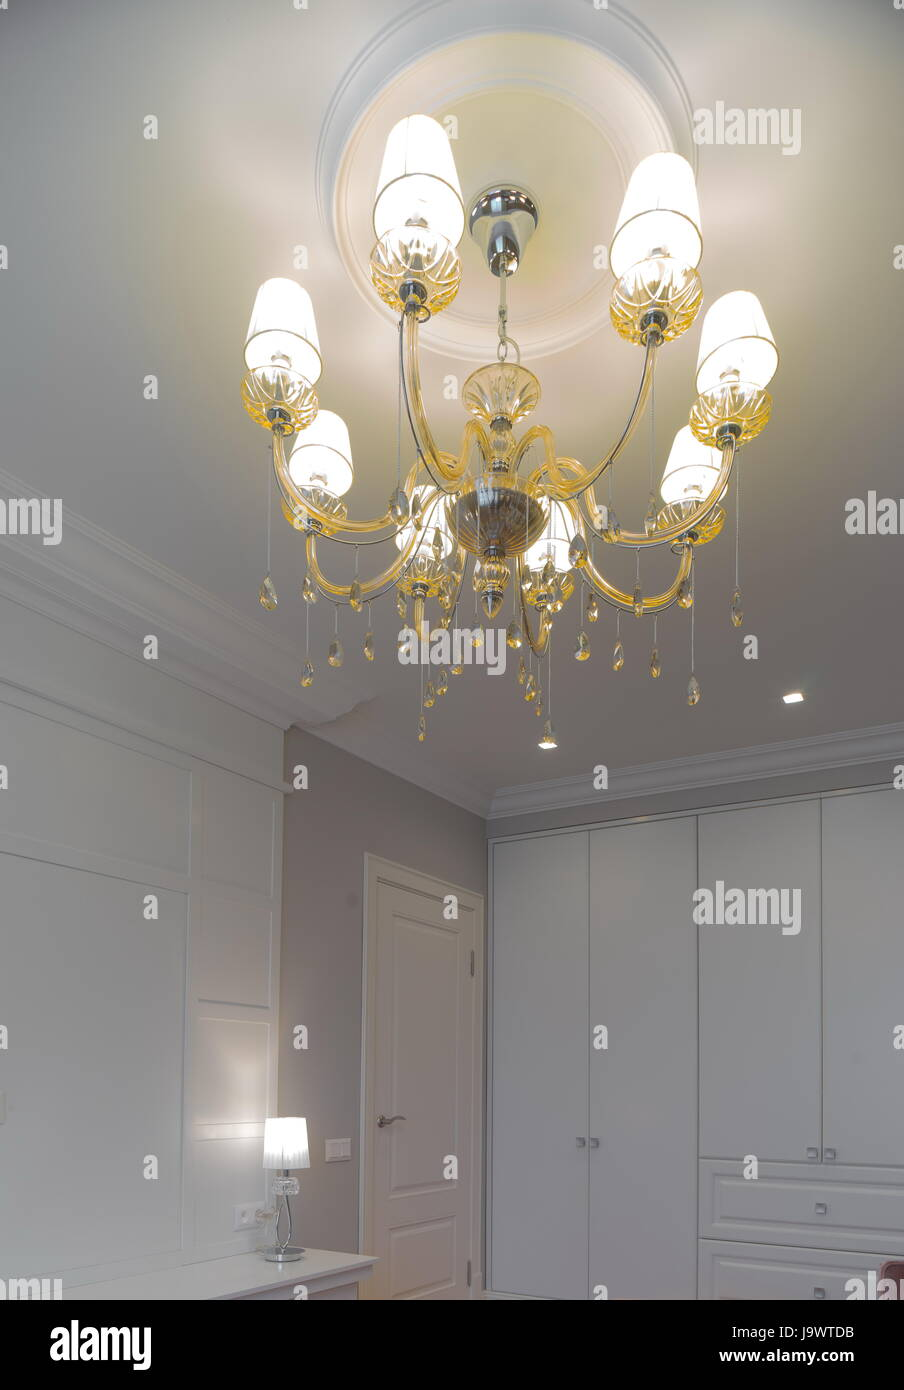 Elegant crystal chandelier on the ceiling stock photo royalty stock photo elegant crystal chandelier on the ceiling arubaitofo Choice Image